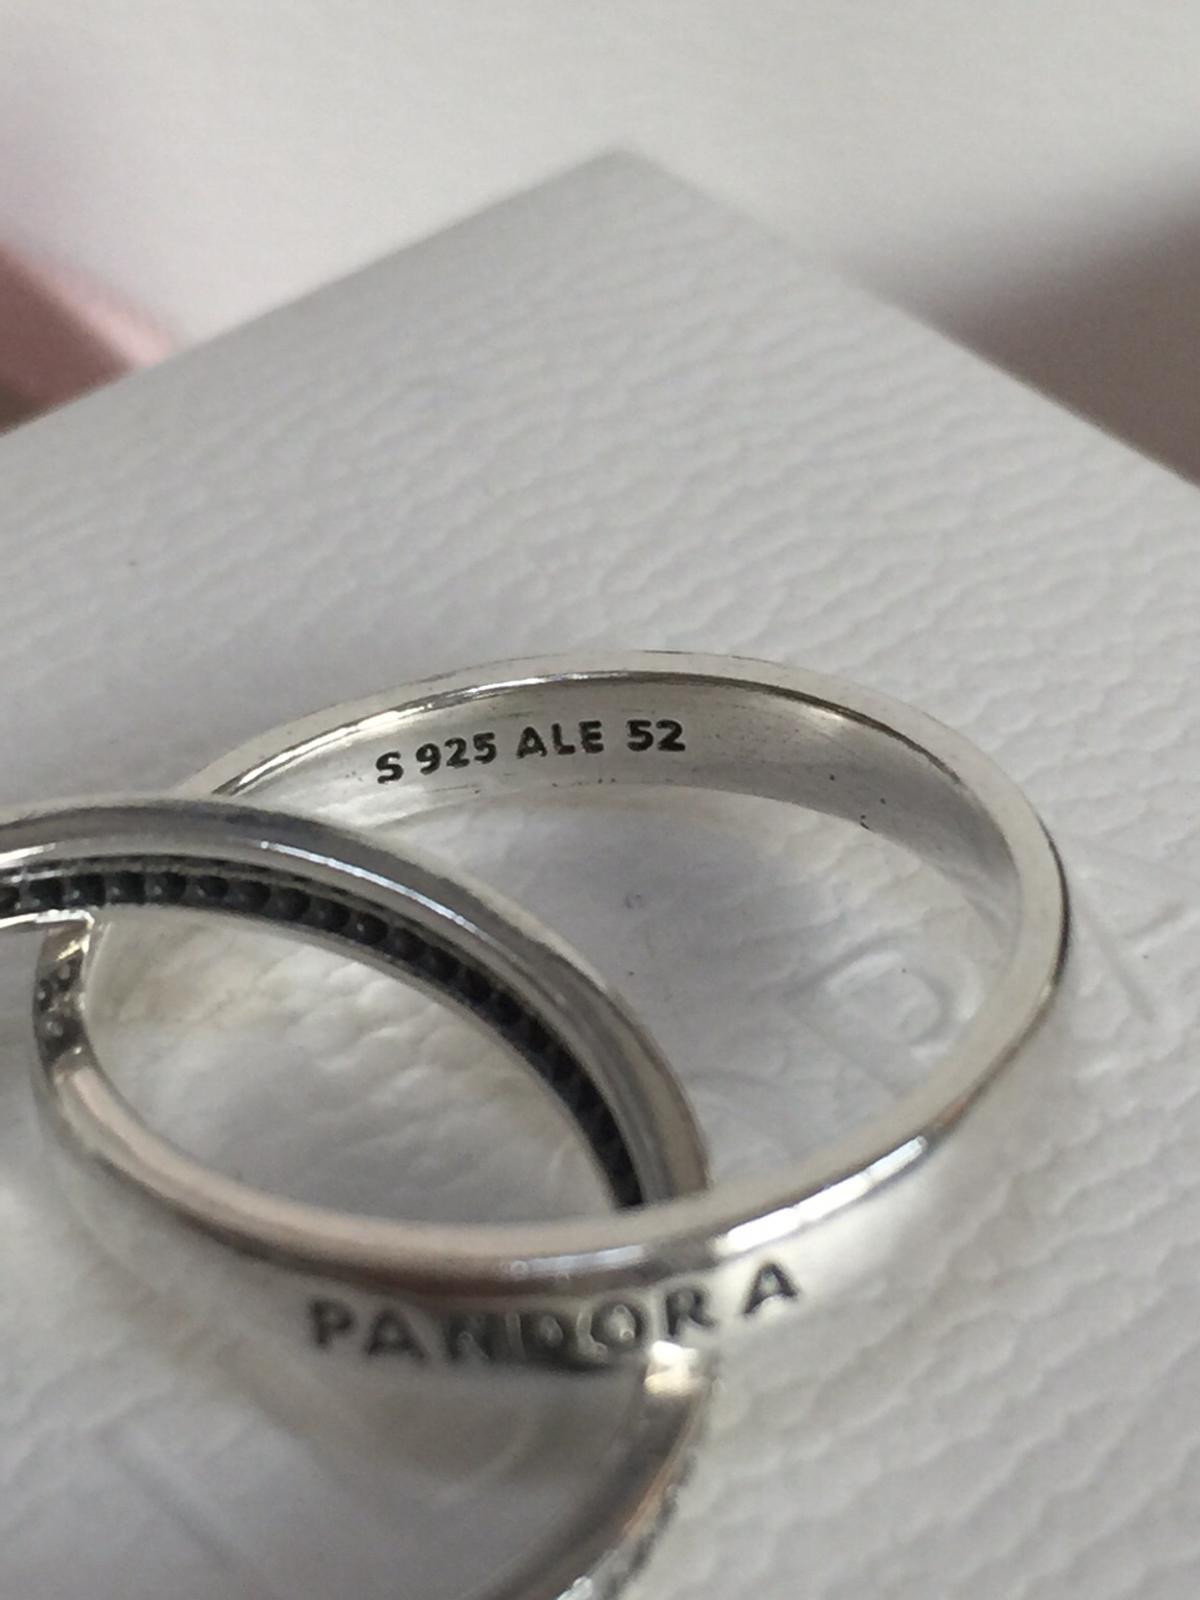 c2ca2536b Pandora Ring size 52, S925 ALE in LE10 Bosworth for £25.00 for sale ...